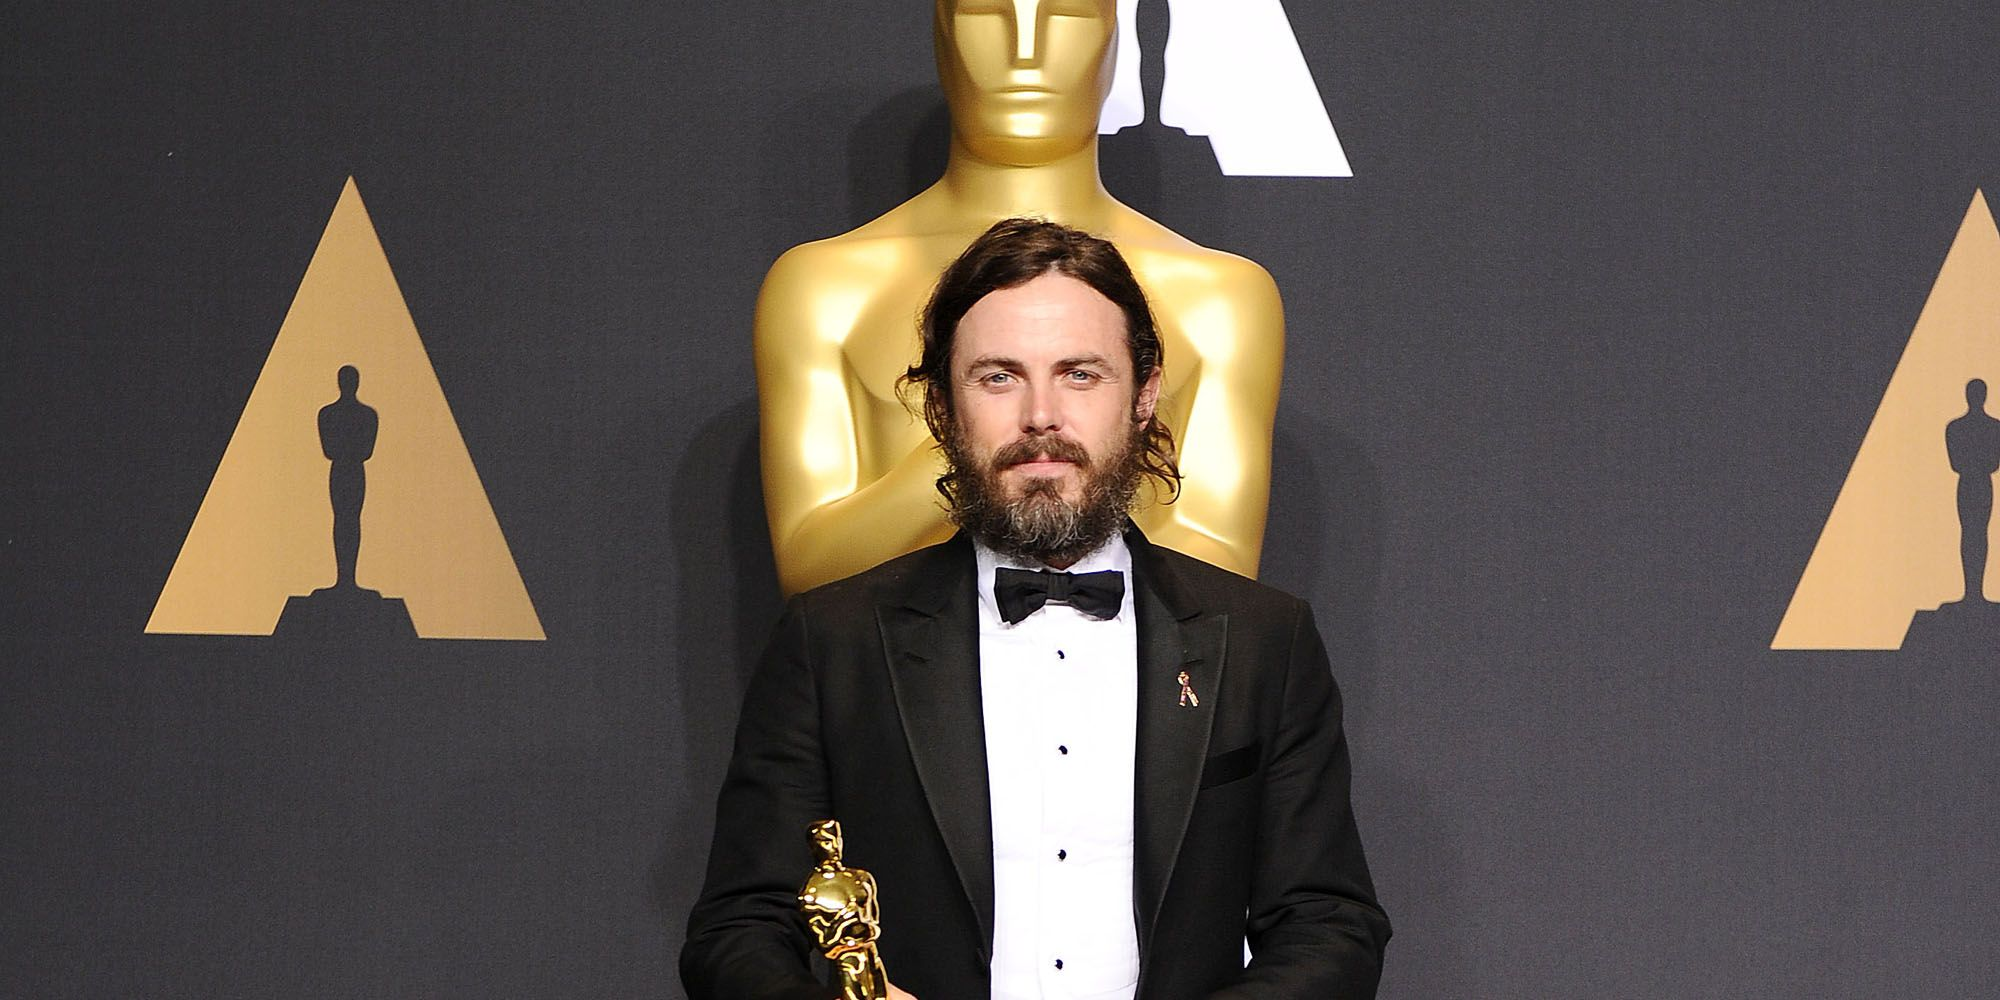 Casey Affleck S Comments About His Sexual Abuse Allegations Are Disappointing Kenneth Lonergan Reacts,Beauty And The Beast Location In France